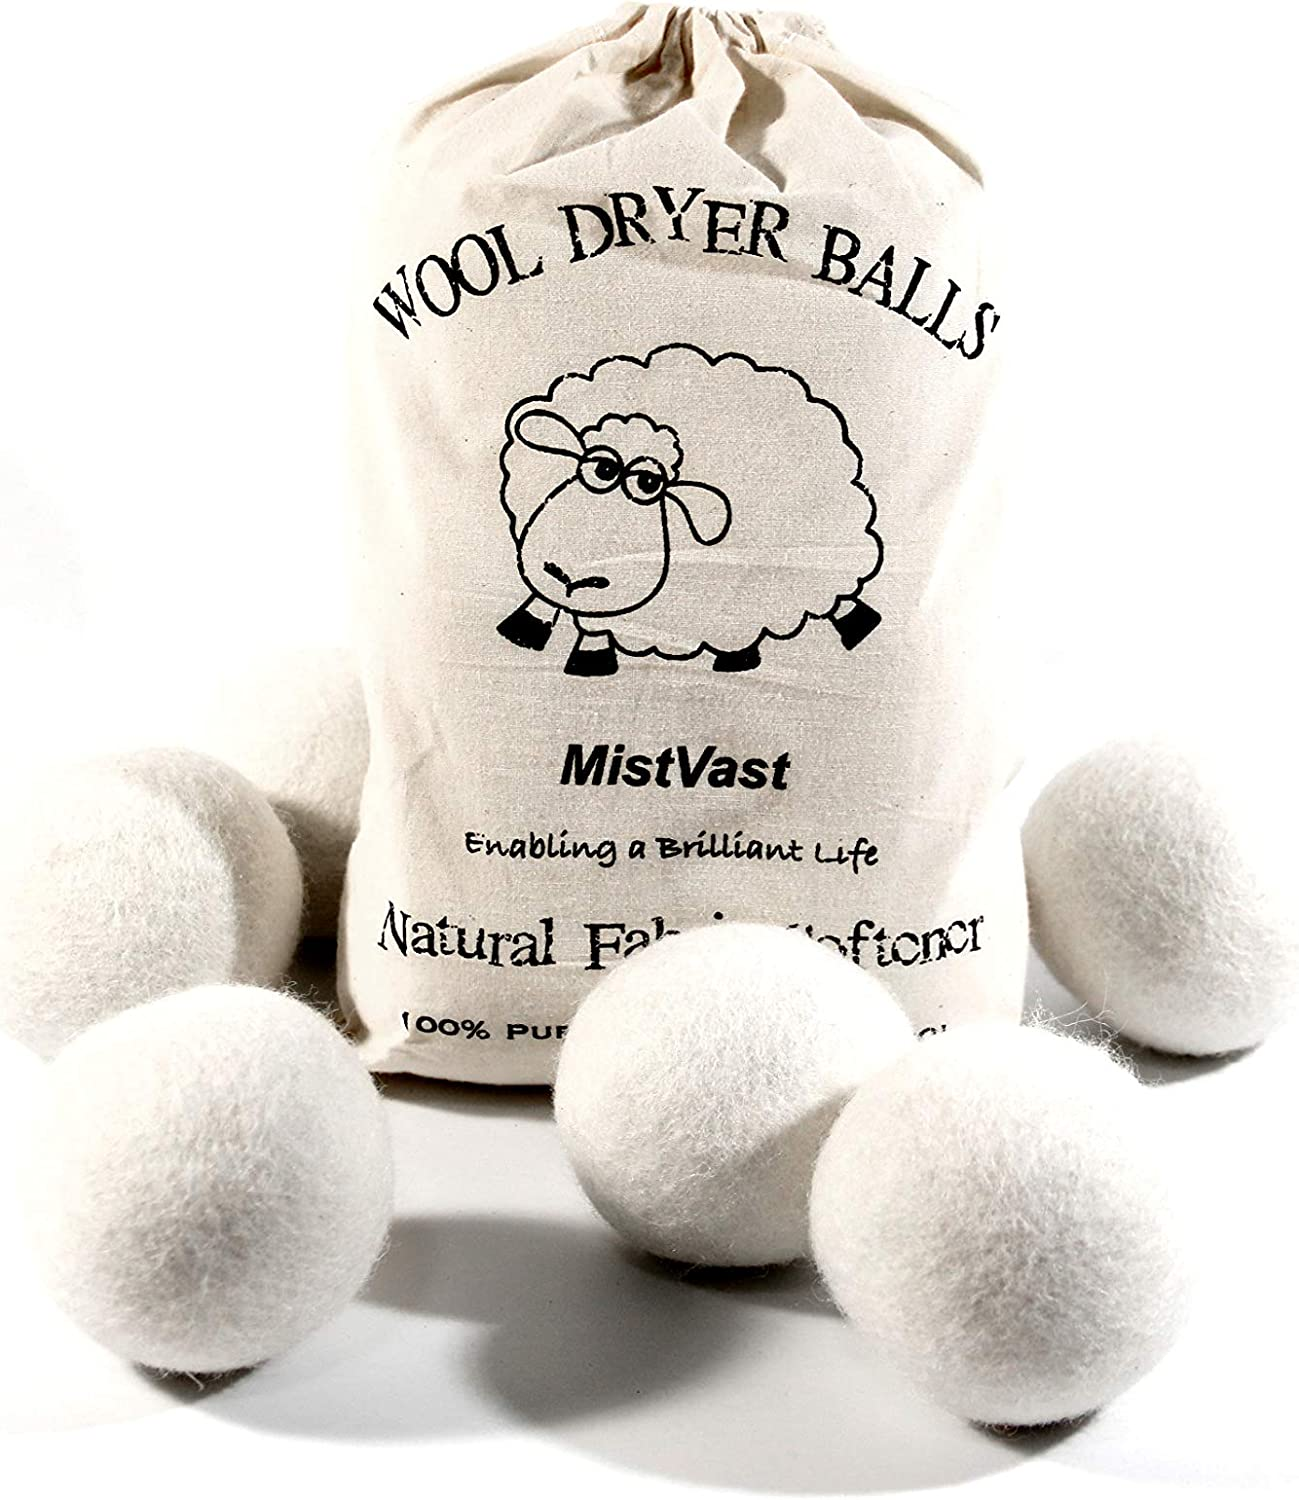 WIWAV MistVast Wool Dryer Balls Organic Extra Large, Natural Fabric Softener, Chemical Free Eco Wool Dryer Balls Laundry, 6 Pack